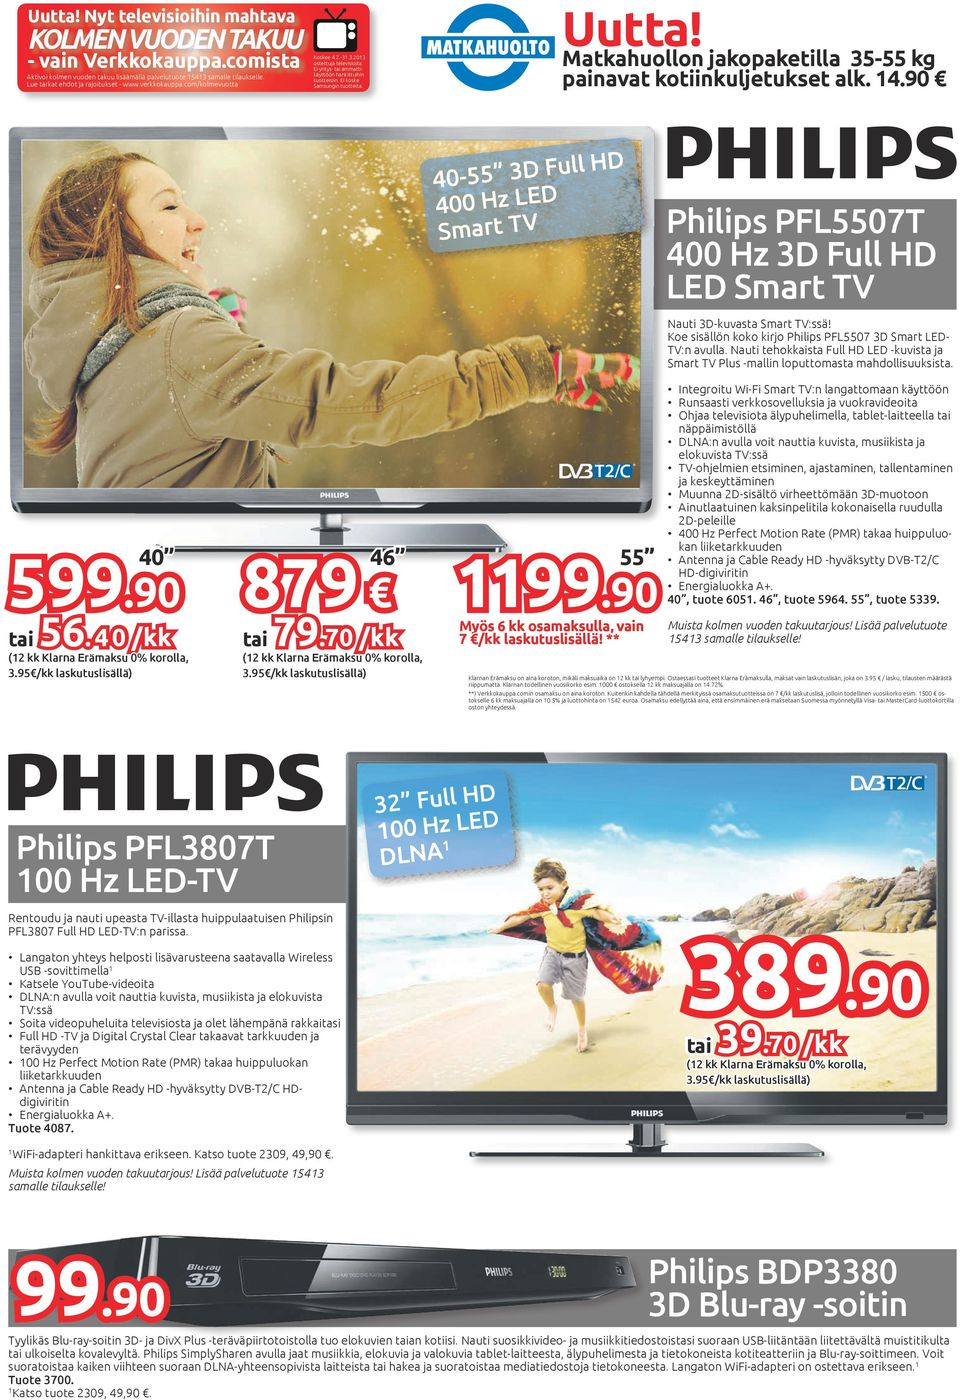 Matkahuollon jakopaketilla 35-55 kg painavat kotiinkuljetukset alk. 14.90 40-55 3D Full HD 400 Hz LED Smart TV Philips PFL5507T 400 Hz 3D Full HD LED Smart TV Nauti 3D-kuvasta Smart TV:ssä!